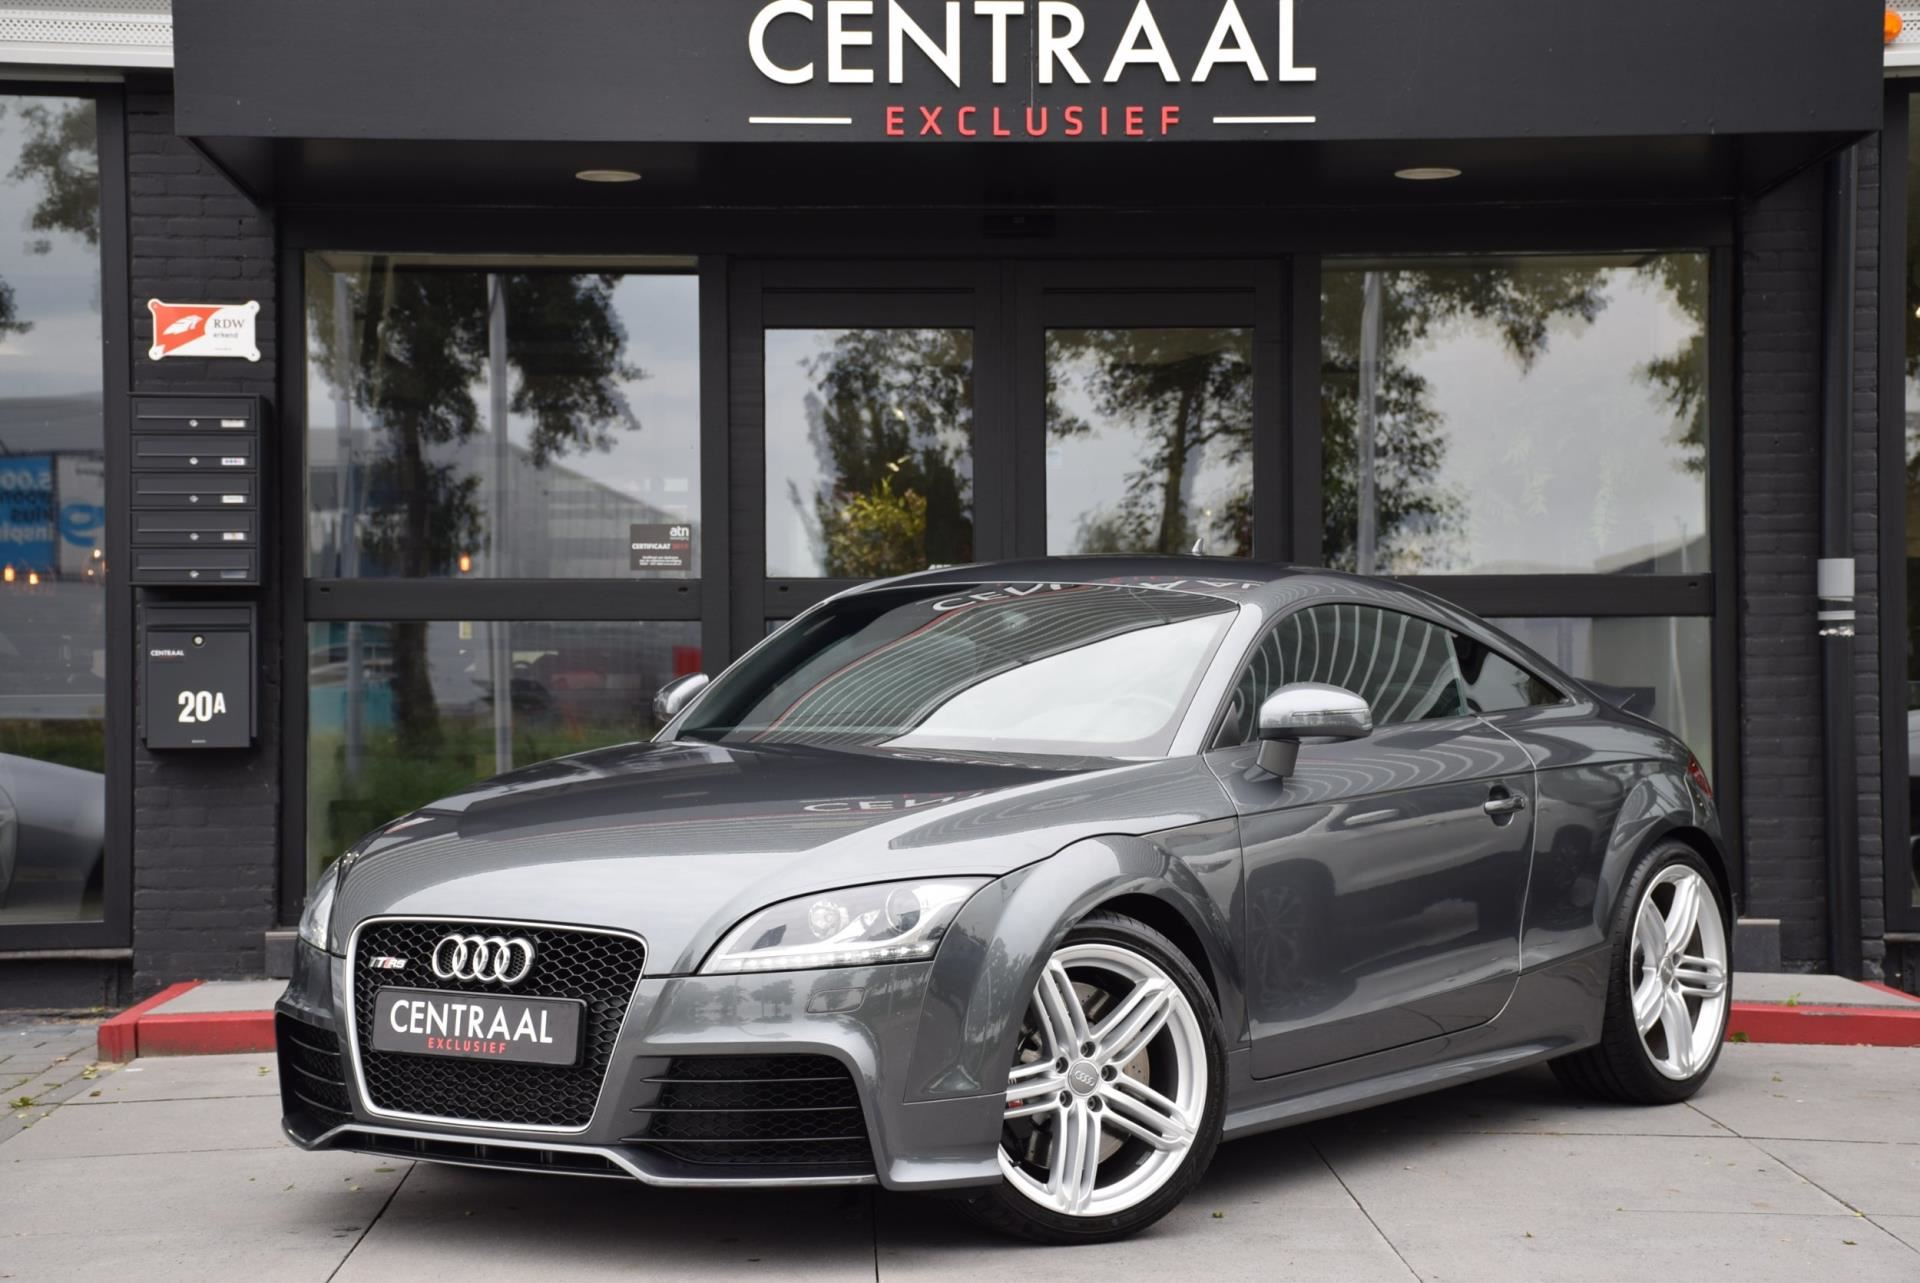 Audi TT RS occasion - Centraal Exclusief B.V.